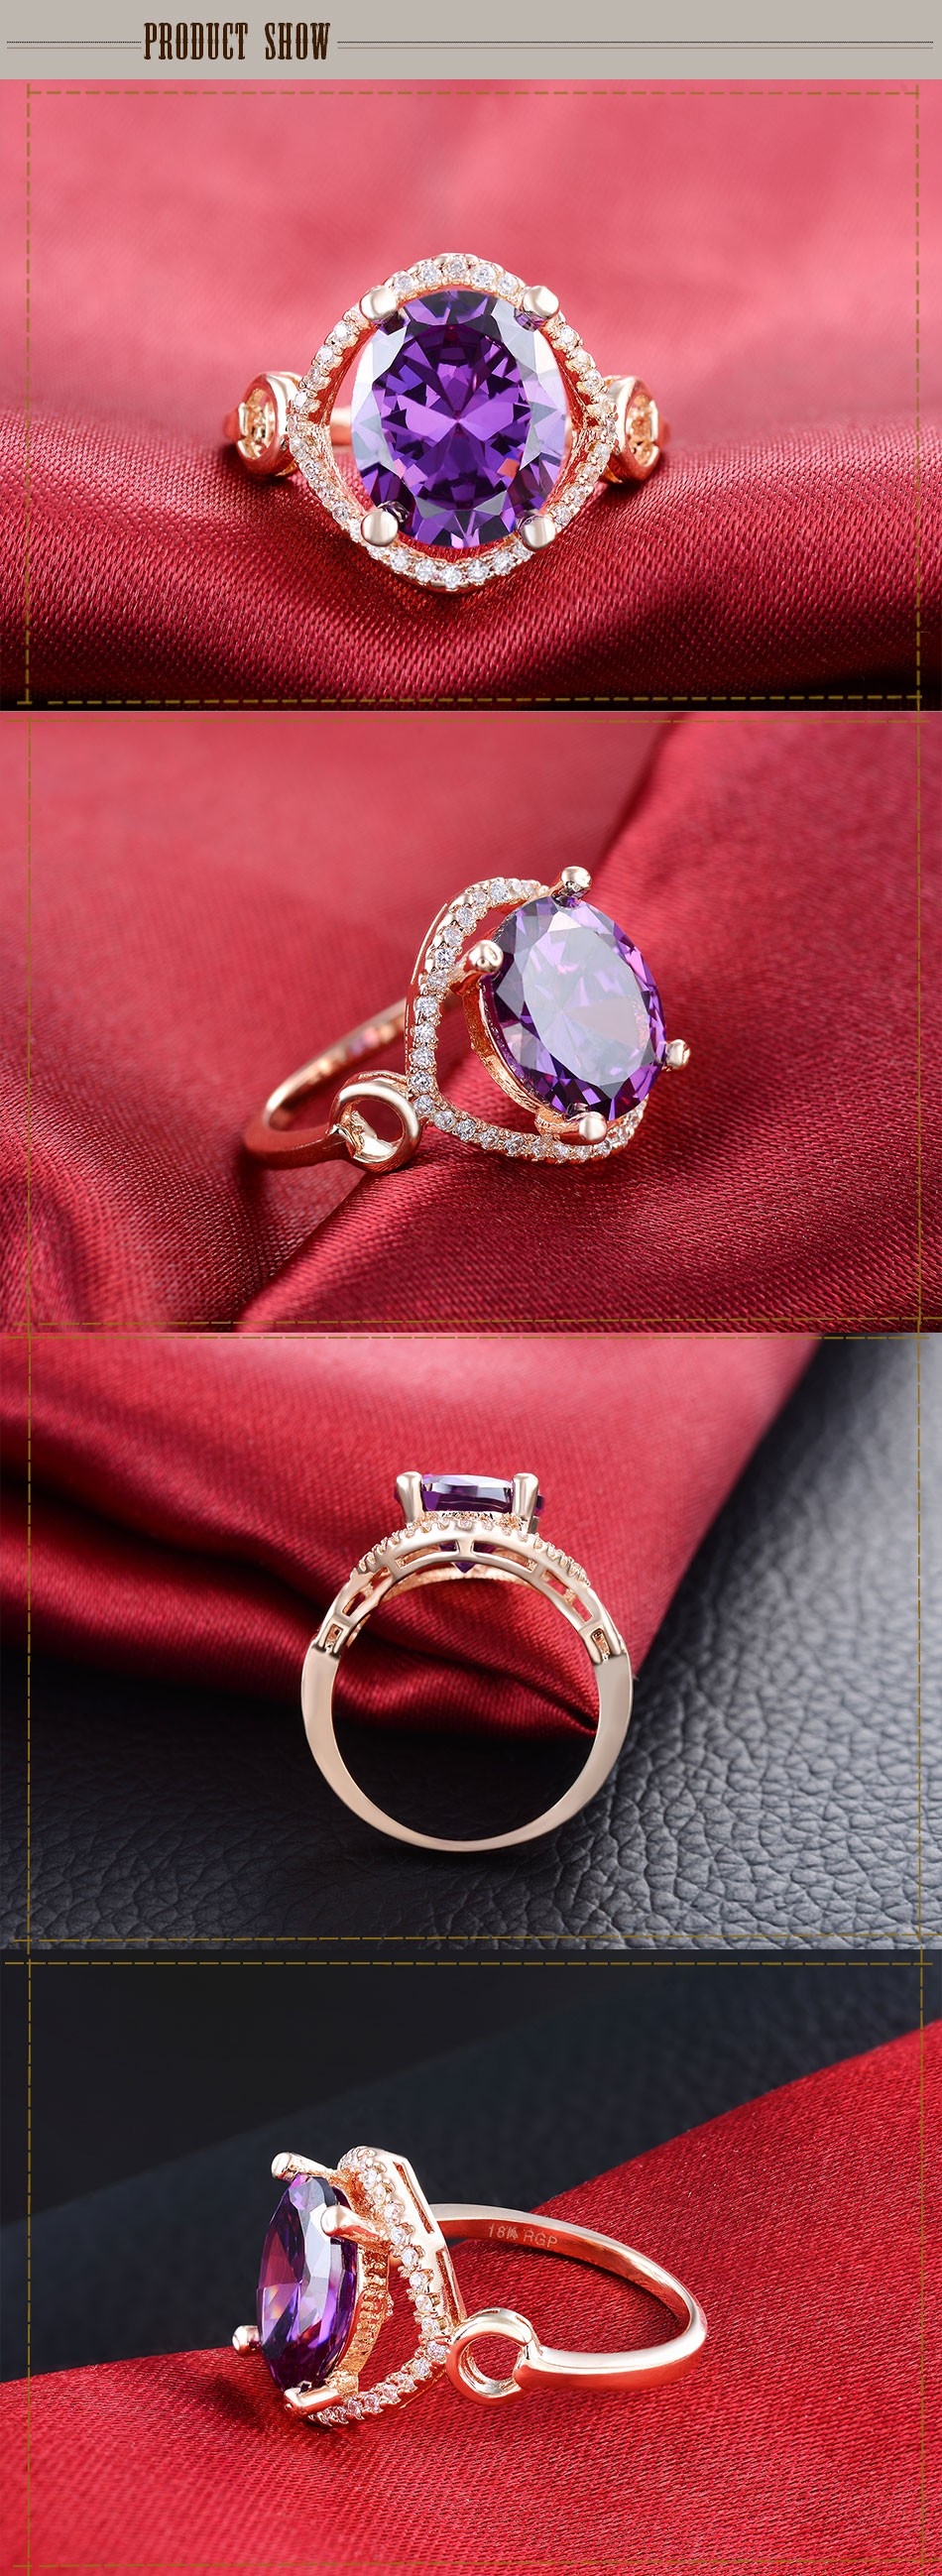 Rose gold color big purple stone rings for women 4 carat jewelry ...